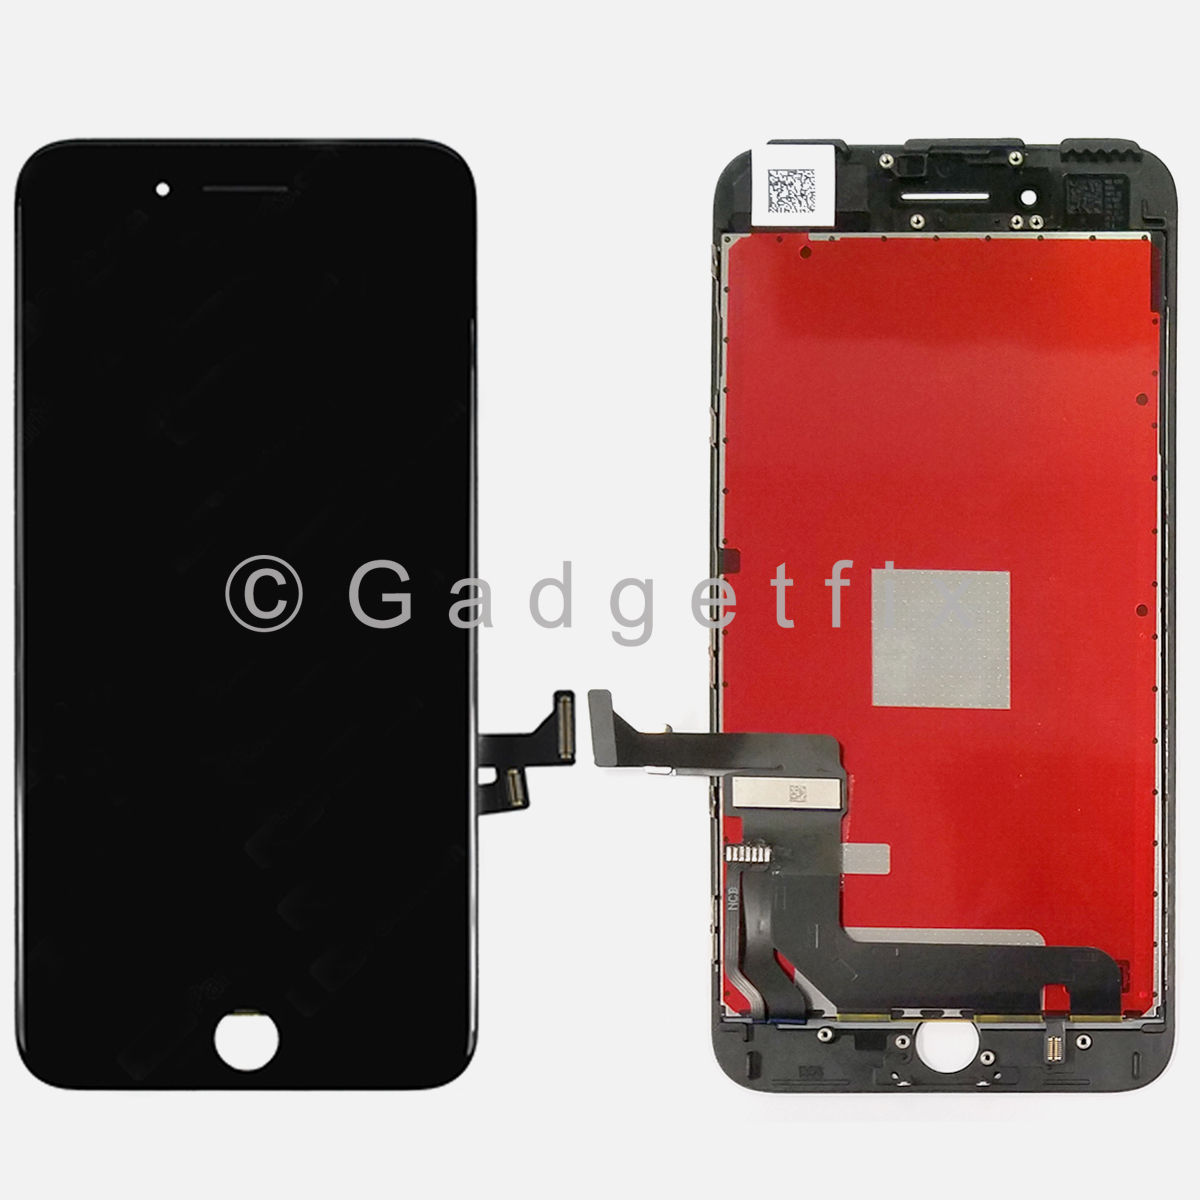 iPhone 7 Plus LCD Screen Display Touch Screen Digitizer Panel + Frame Assembly